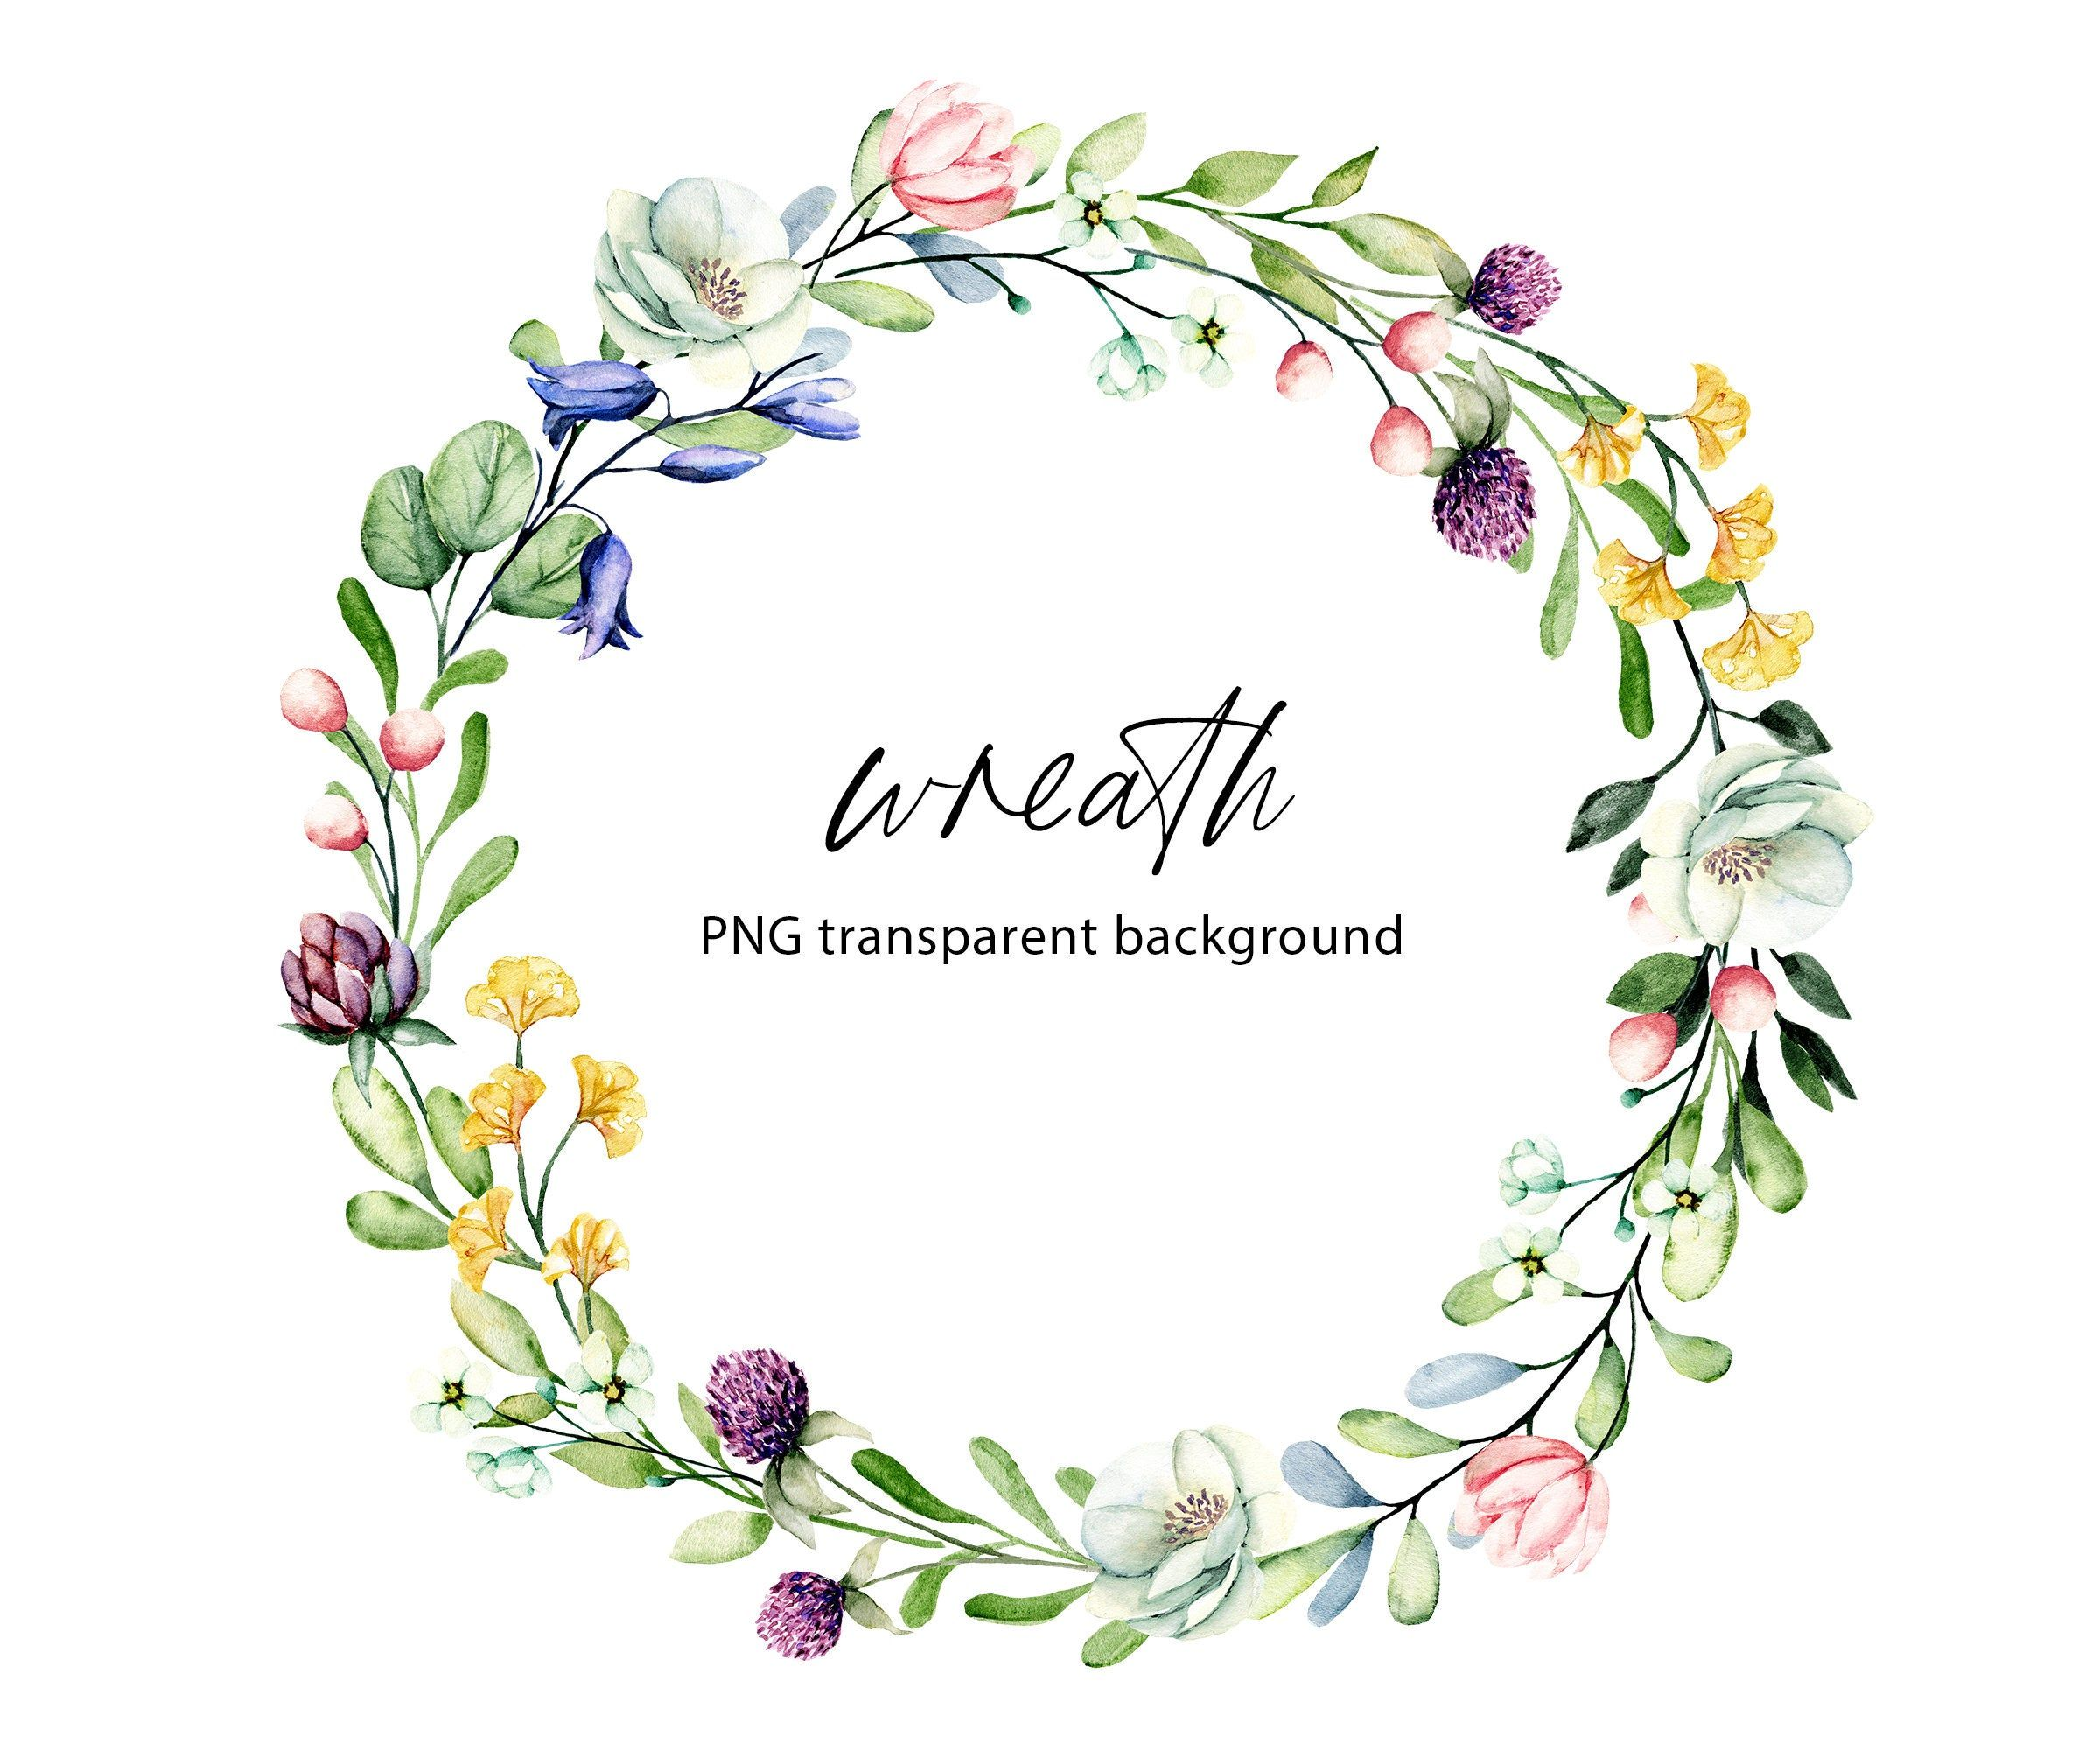 Wreath Watercolor Flowers Clipart Frame With Bouquets Wildflowers Watercolor Painting Png Tran Watercolor Flowers Wreath Watercolor Watercolor Flower Wreath